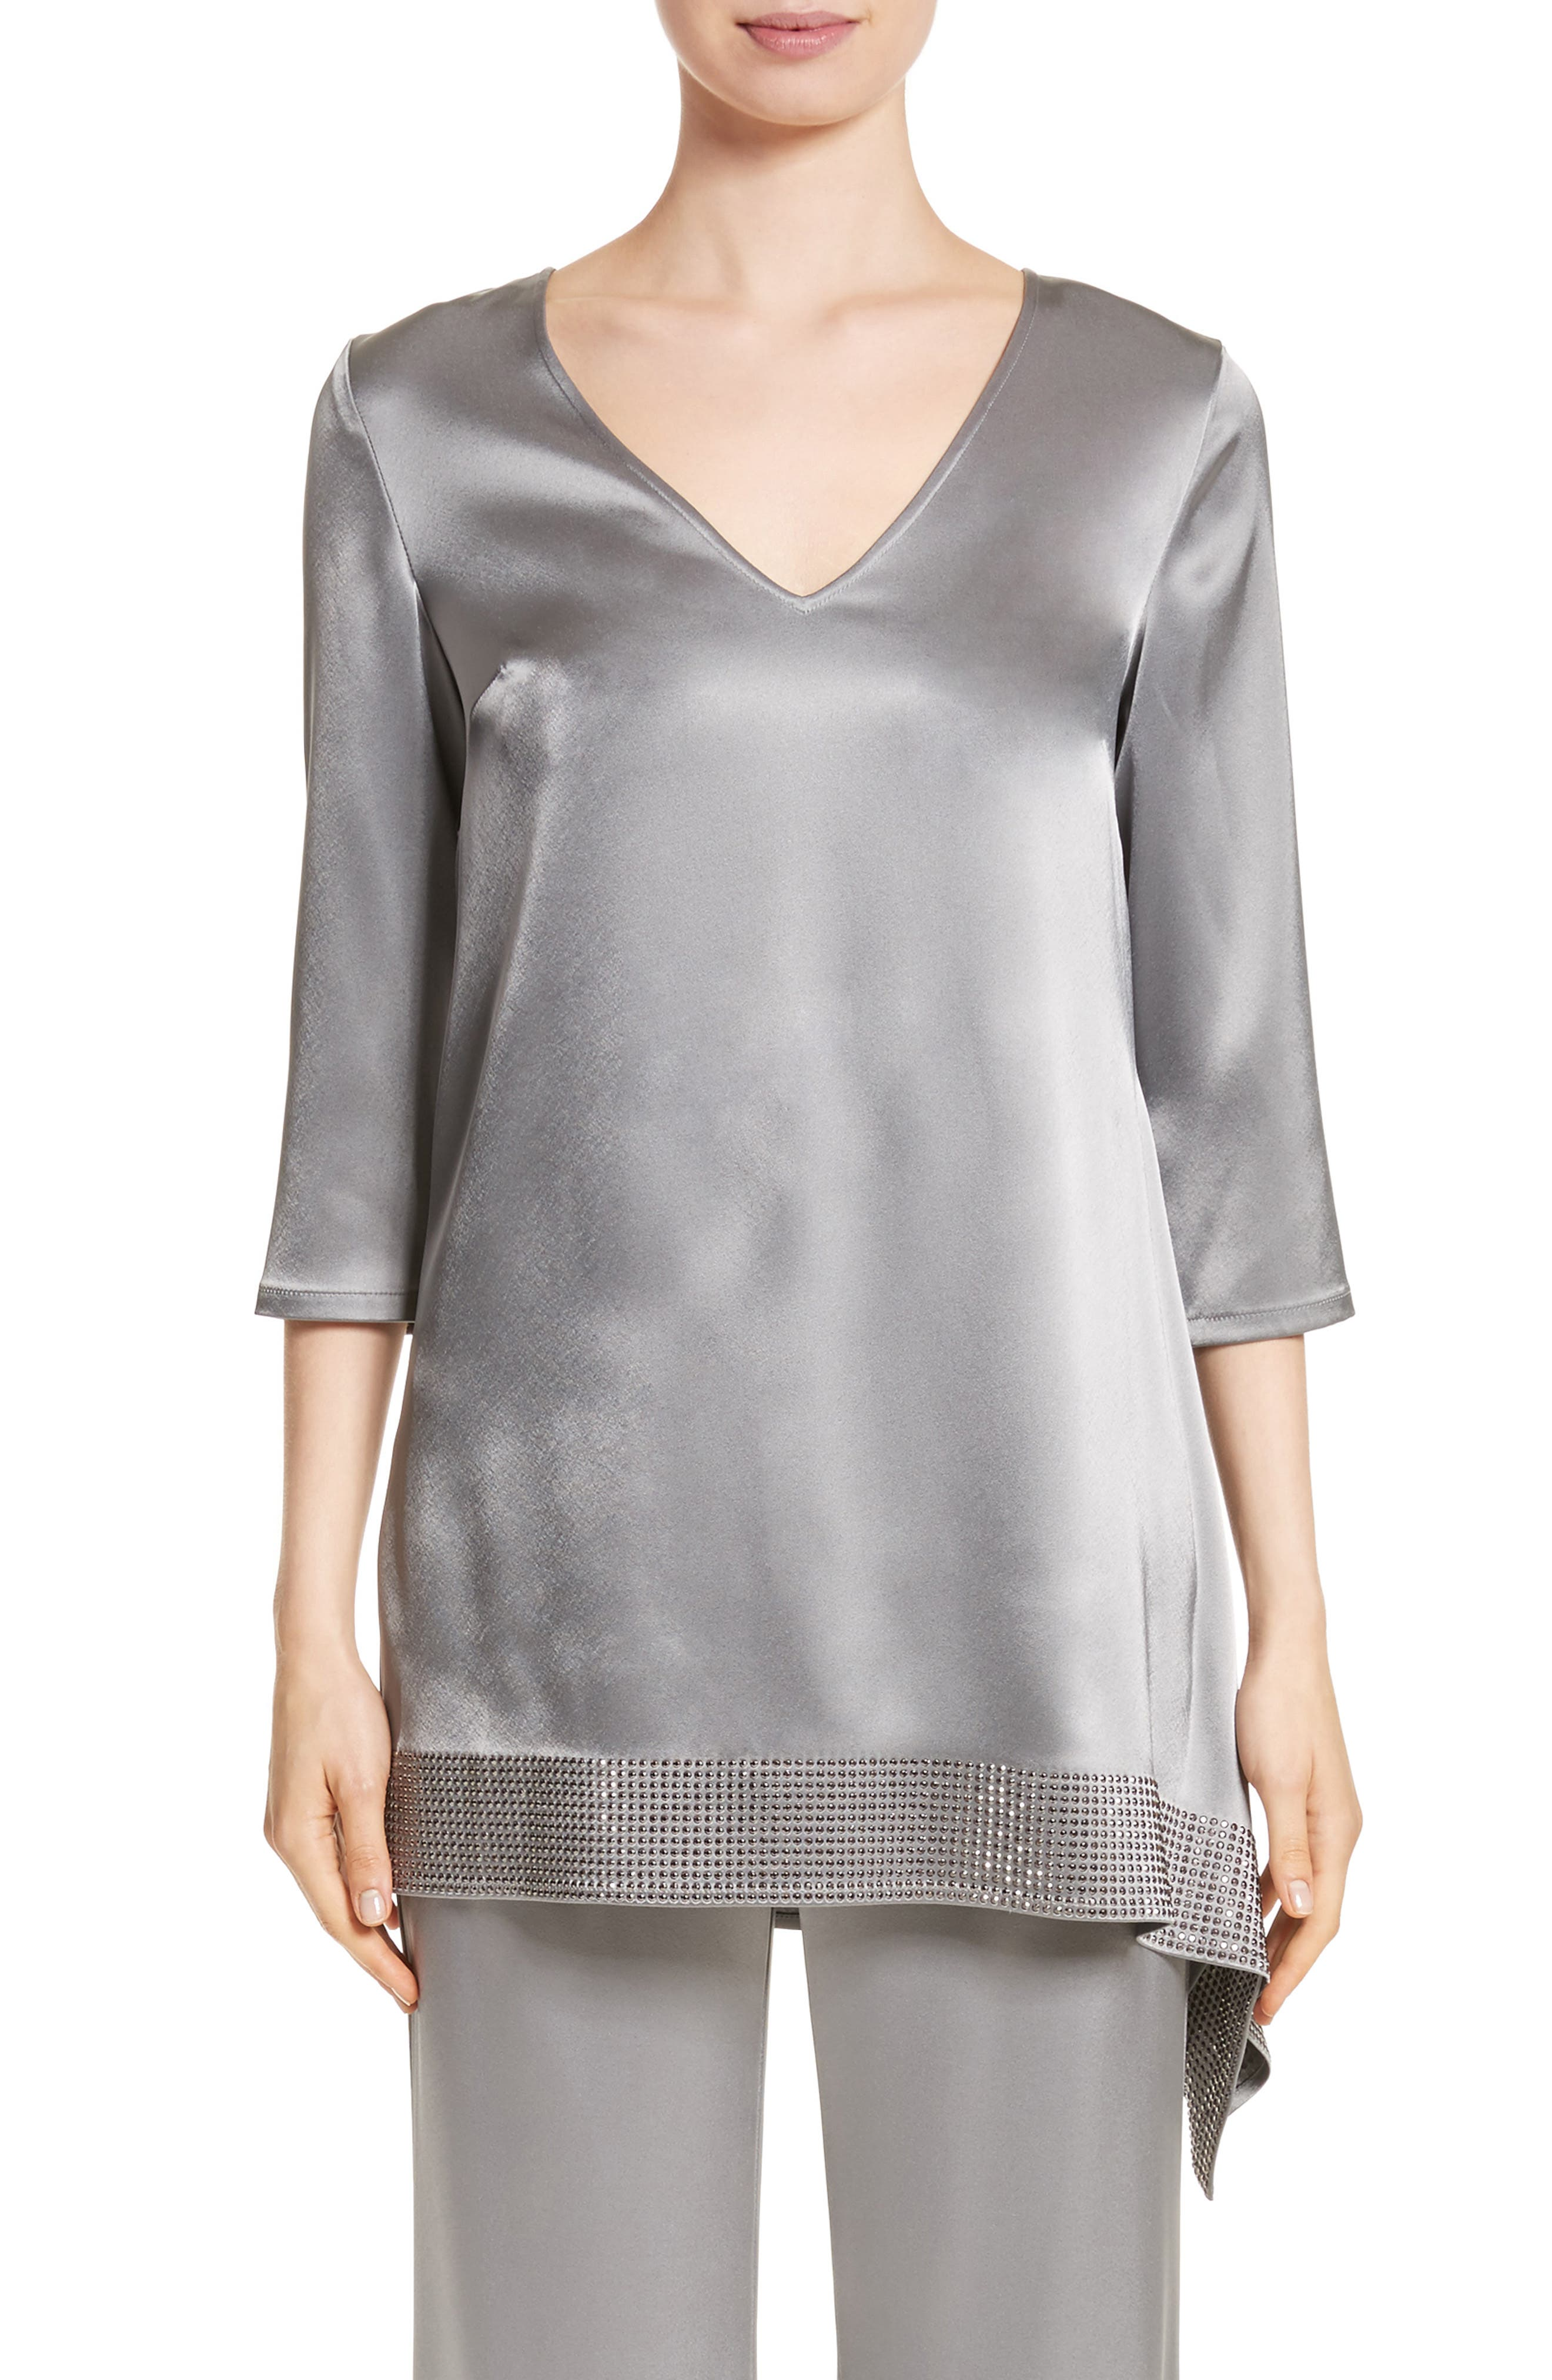 Alternate Image 1 Selected - St. John Collection Liquid Satin Asymmetrical Top